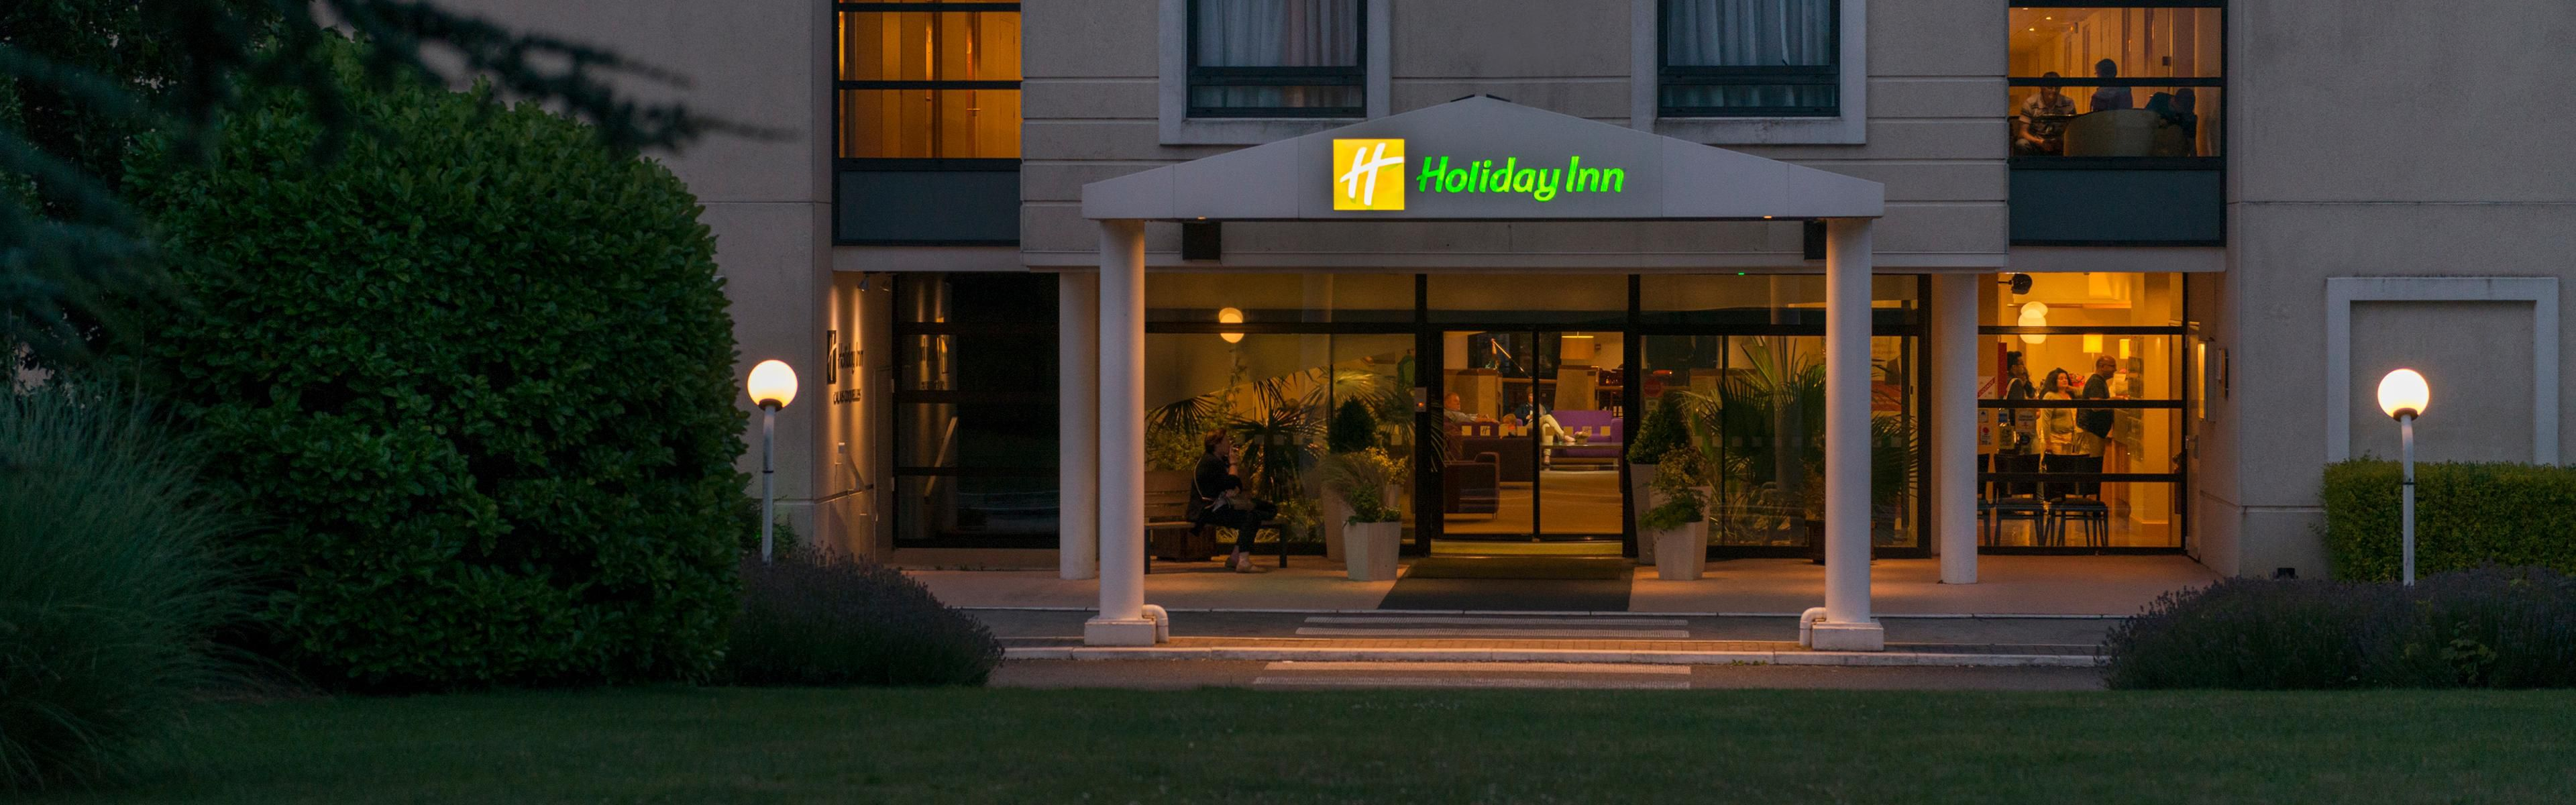 Holiday Inn Calais   Coquelles